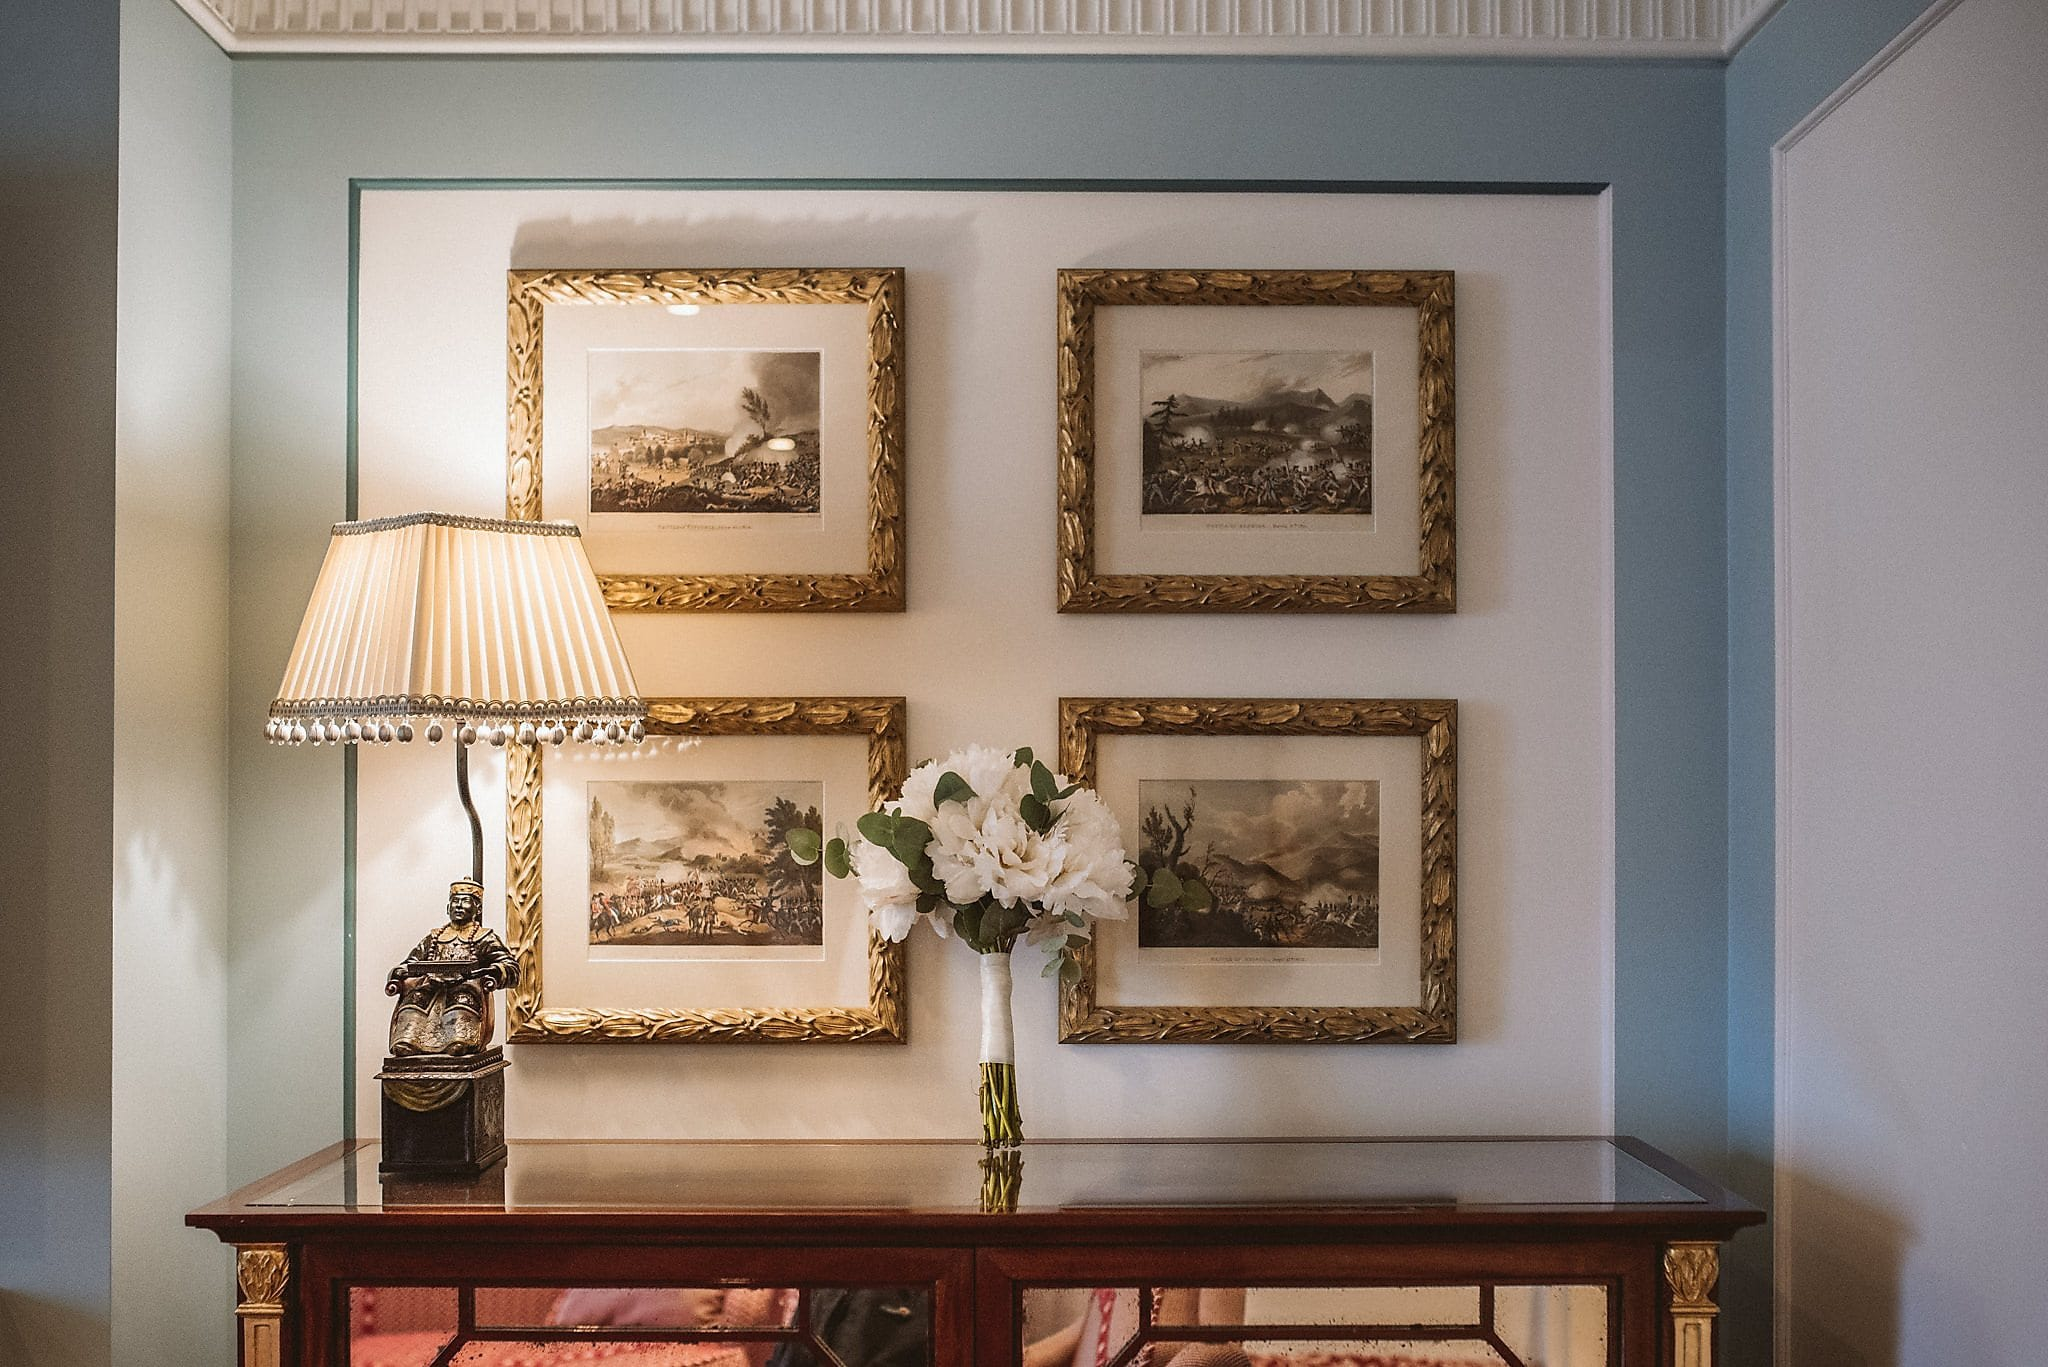 Bridal bouquet on table with gilt framed pictures on the wall behind it